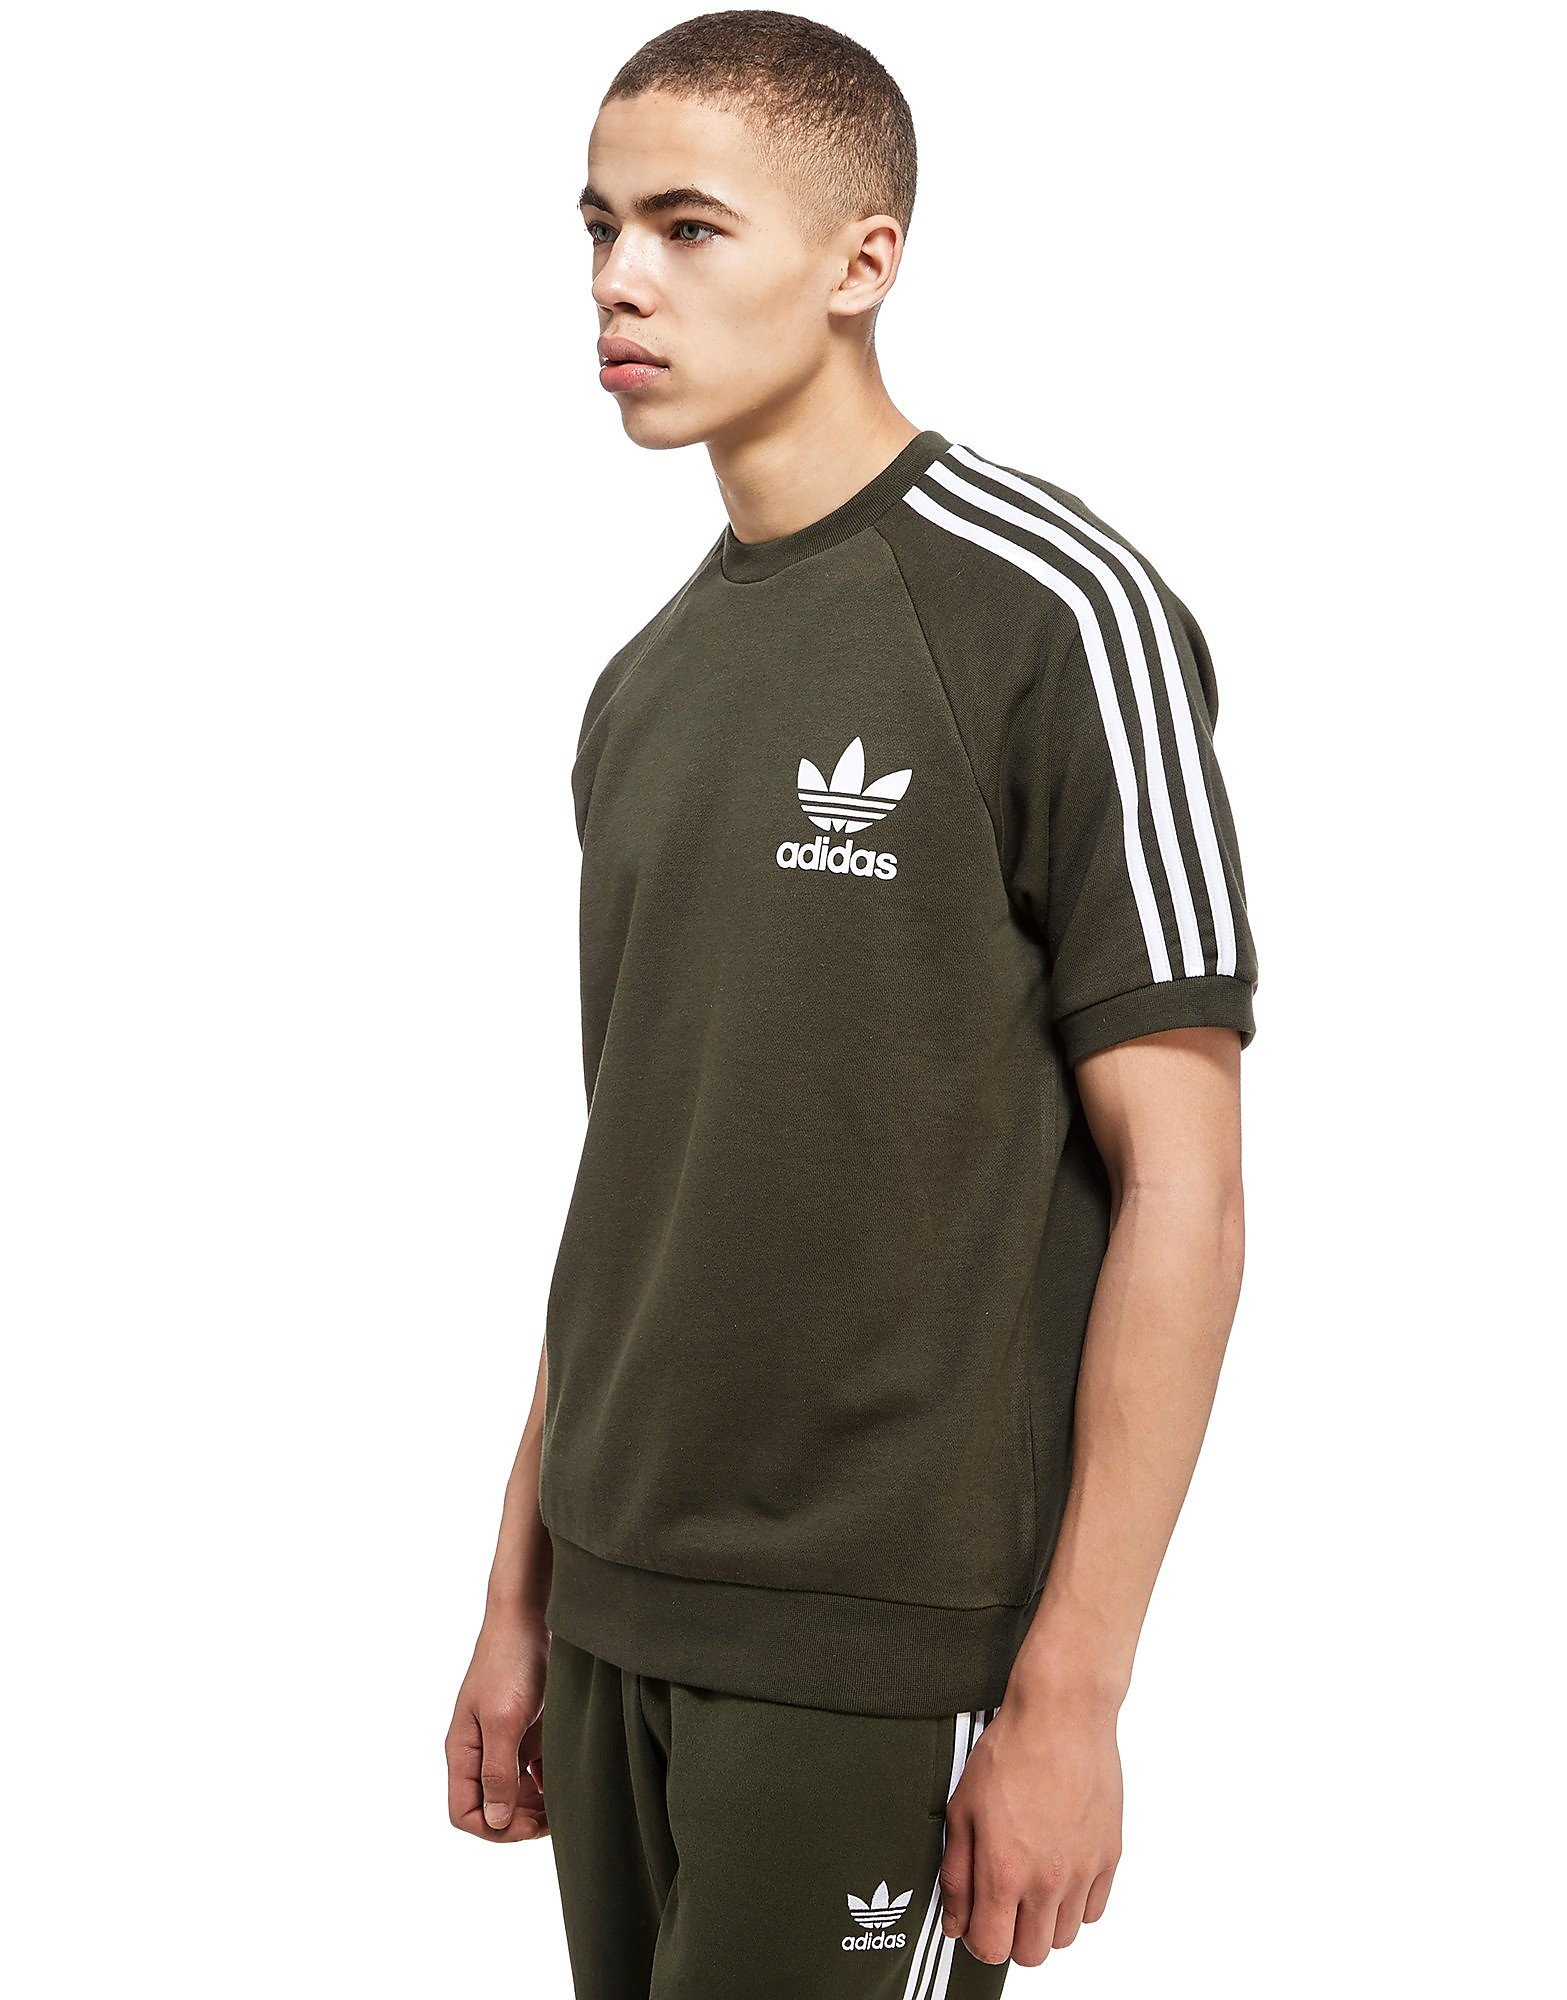 adidas Originals California Short Sleeve Crew Sweatshirt